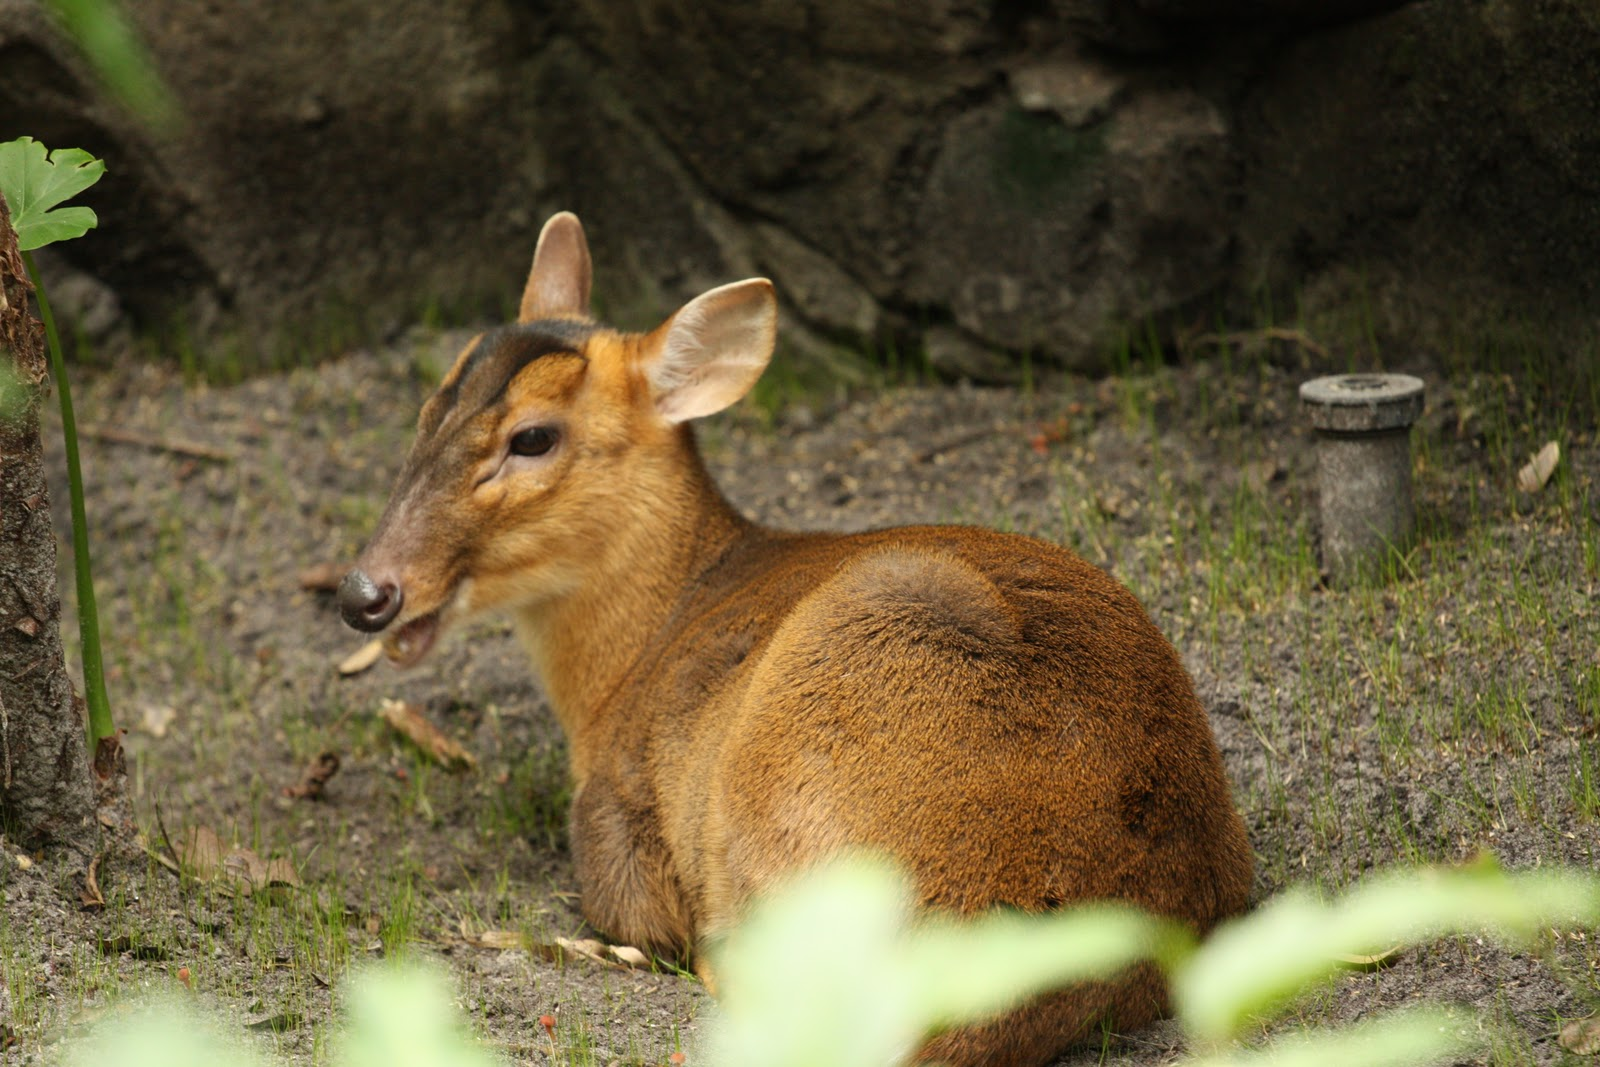 Reeve's muntjac videos, photos and facts - Muntiacus reevesi | ARKive